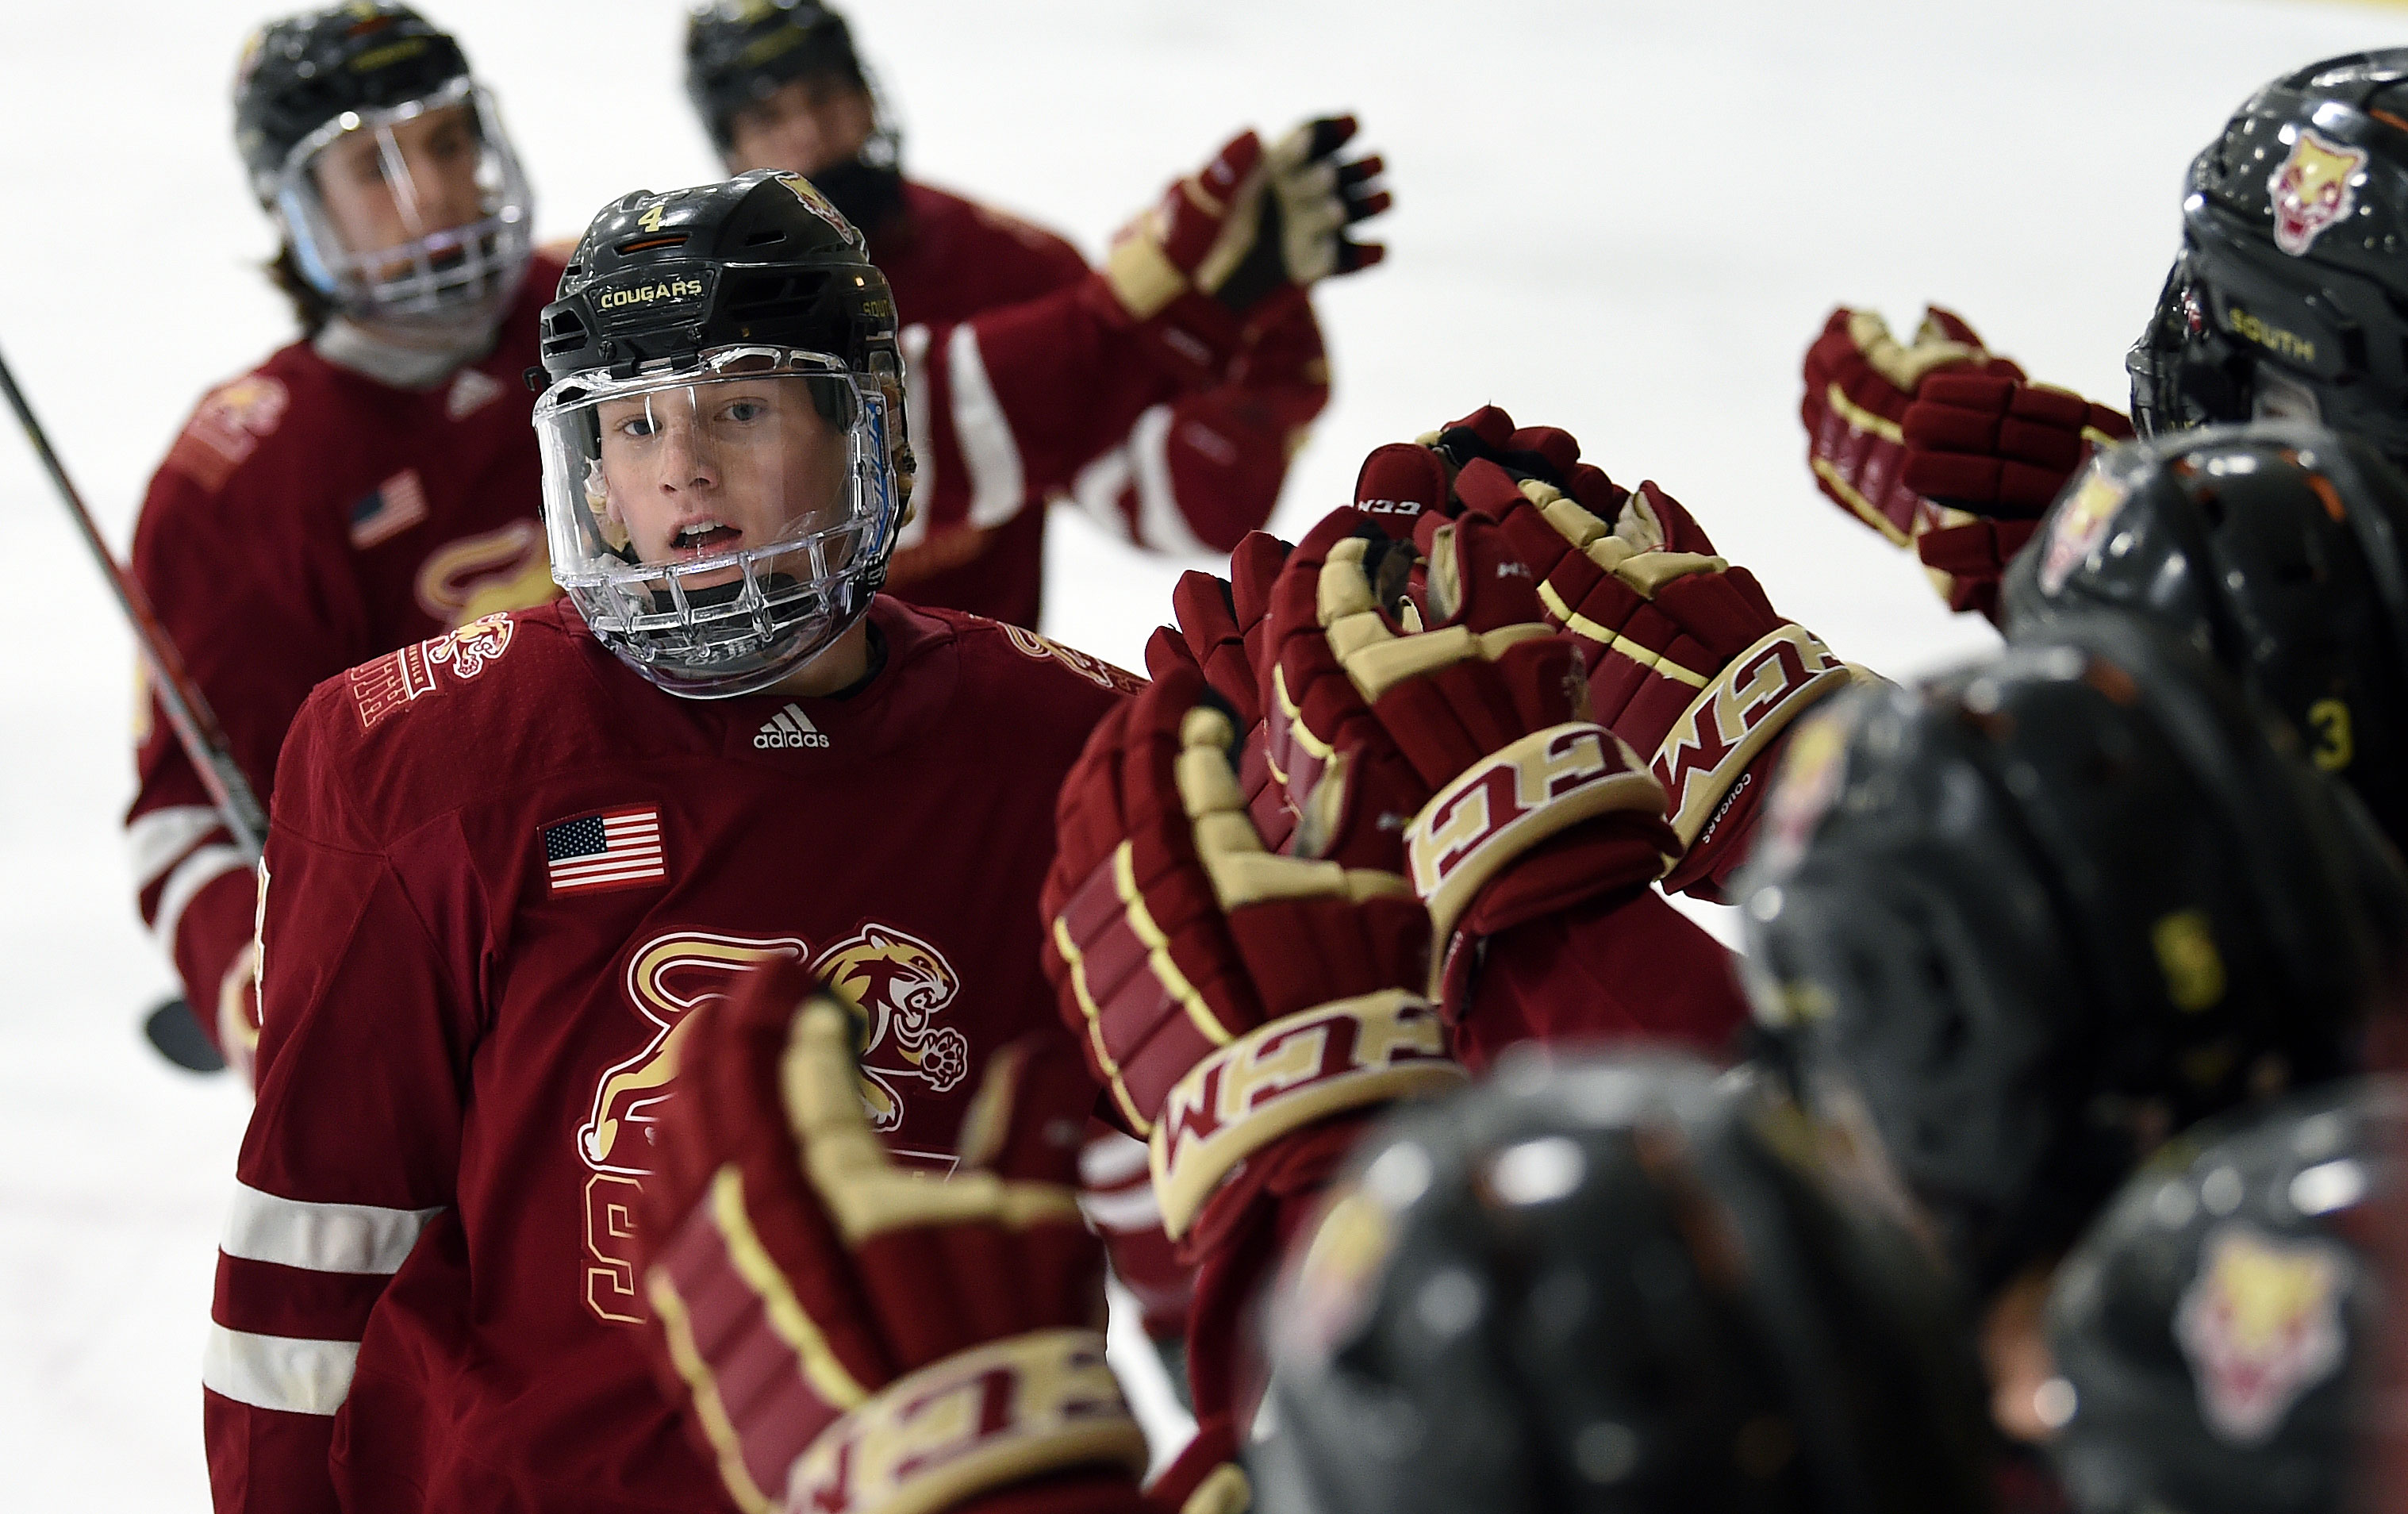 Lakeville South sophomore Tanner Ludtke celebrated one of his two goals Tuesday night in the Cougars' 4-3 victory over Maple Grove. Photo by Loren Nelson, SportsEngine